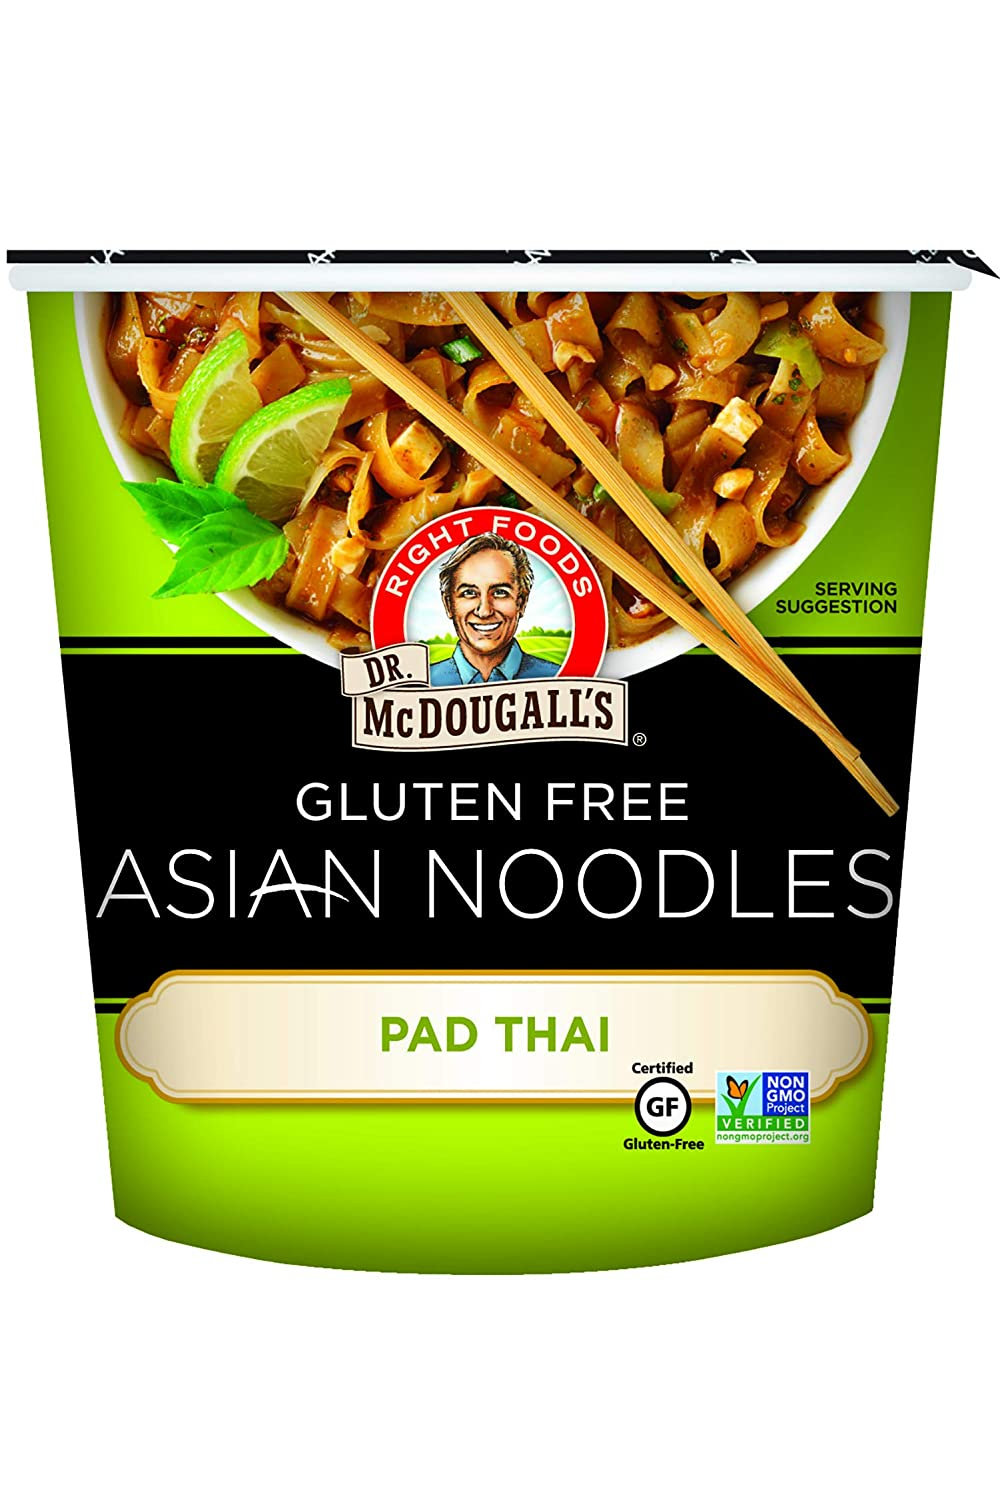 Dr. McDougall's Right Foods Asian Entree Pad Thai Noodle, 2 Ounce Cups (Pack of 6) Gluten-Free, Non-GMO, No Added Oil, Paper Cups From Certified Sustainably-Managed Forests